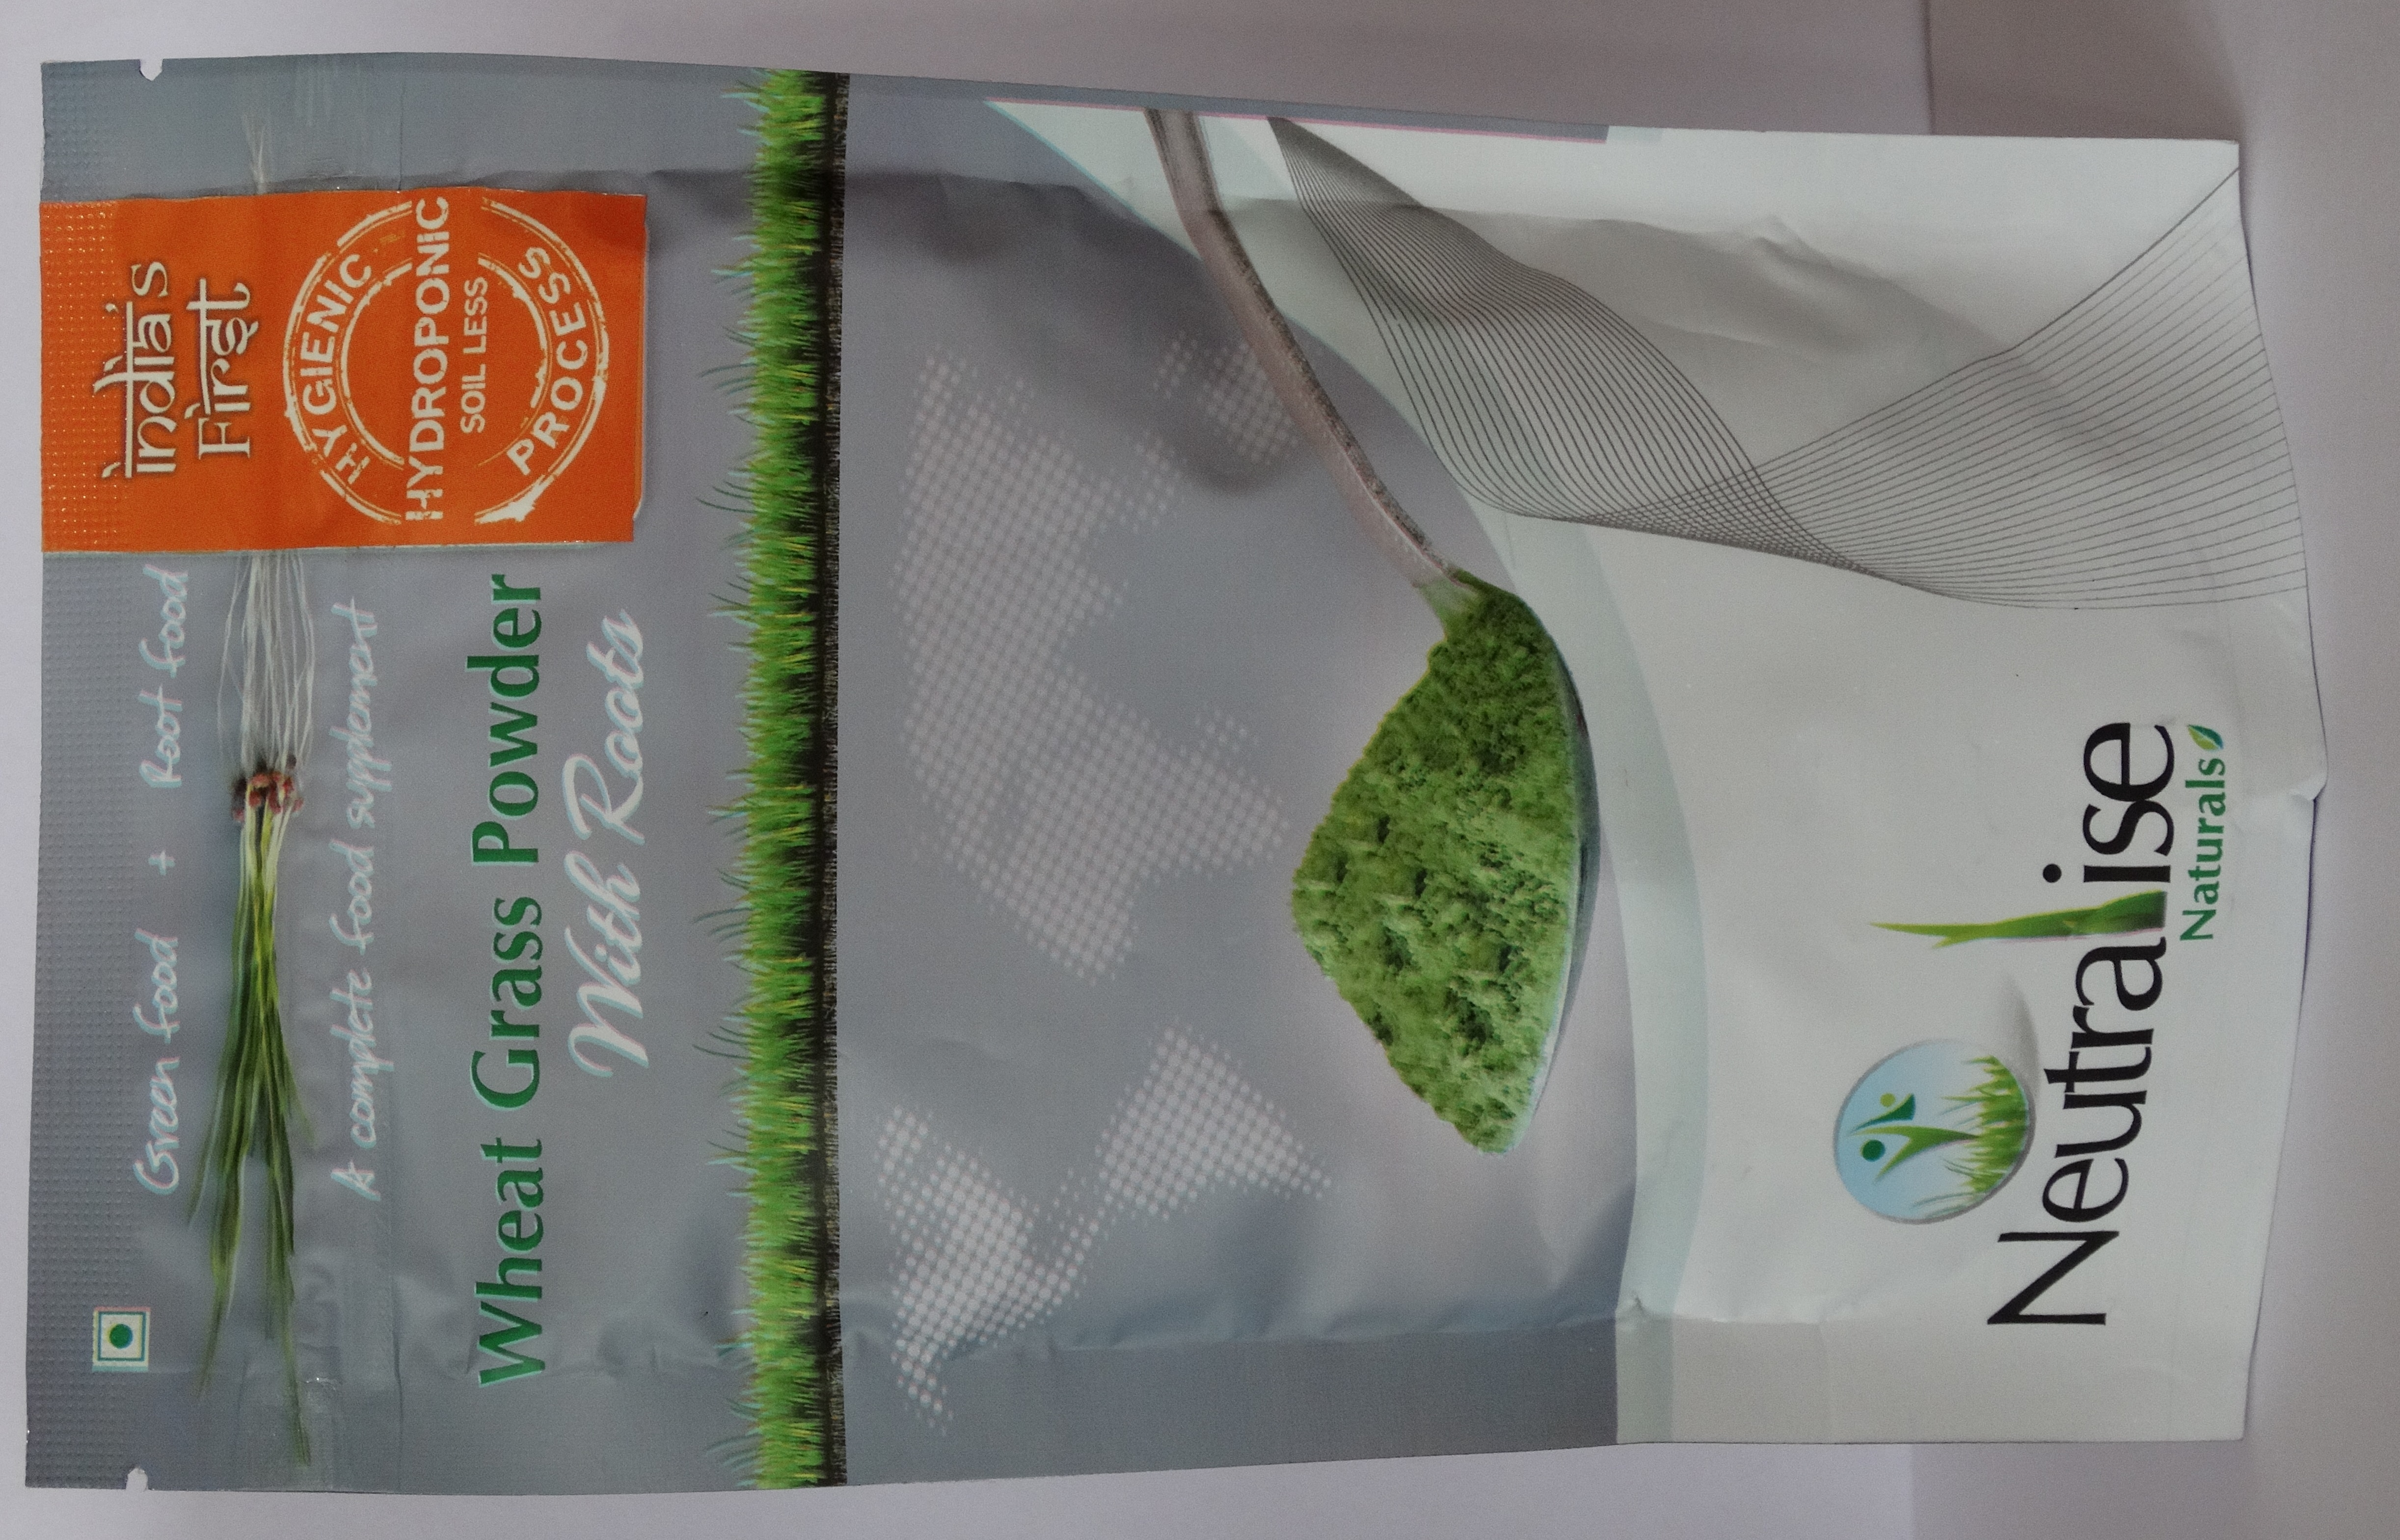 Unique Features of our Wheat grass powder: •We are India's first wheat grass powder with Roots, grown in a Hygienic, Hydroponic Soil-Less process.  •In this process the wheat grass is grown in an enclosed air-conditioned environment and harvested on the 7th day. Only single crop is used in this process and we do not go for 2nd and 3rd harvest.  •Neutralise wheat grass powder has better taste and smoother to consume when compared with other conventionally grown wheat grass products and has no mud smell or sediments. It contains no added flavour, preservatives or colour. •The leaves of wheatgrass have a cooling effect, whereas the roots produce a heating effect to the body, combining both these characteristics it Neutralises the effect produced by each individually.  •Roots have more number of amino acids and full of enzymes which help in faster wound recovery. •Roots have high fiber content and good amount of magnesium to improve the digestive system of the body and to deal with the constipation disorders.  Benefits of using Neutralise Wheat grass powder: •Best Detoxifier, and helps in decrease of fat levels. •Helps in Controlling blood sugar level, BP, cholesterol, cancer and thyroid. •Improves Immunity, energy levels and revitalizes the body.  •Improves digestion and controls acidity, helps for proper bowel movements. •Helps in anti greying of the hair, cure skin diseases, improves skin and muscle tone. •It provides the necessary vitamins, proteins, minerals, dietary fiber and chlorophyll.   •Maintains the hemoglobin levels of blood. •Slows down the aging process. •Helps to improve the reproductive health of both men and women.  •Helps to eliminate toothache and other mouth problems. •Helps to reduce body and joint pains and helps in faster wound recovery. •Wheat grass contains upto 70% chlorophyll, which is an important blood builder and neutralizes toxins in the body, helps to purify Liver and in normalizing blood pressure. •This is the simplest and most convenie